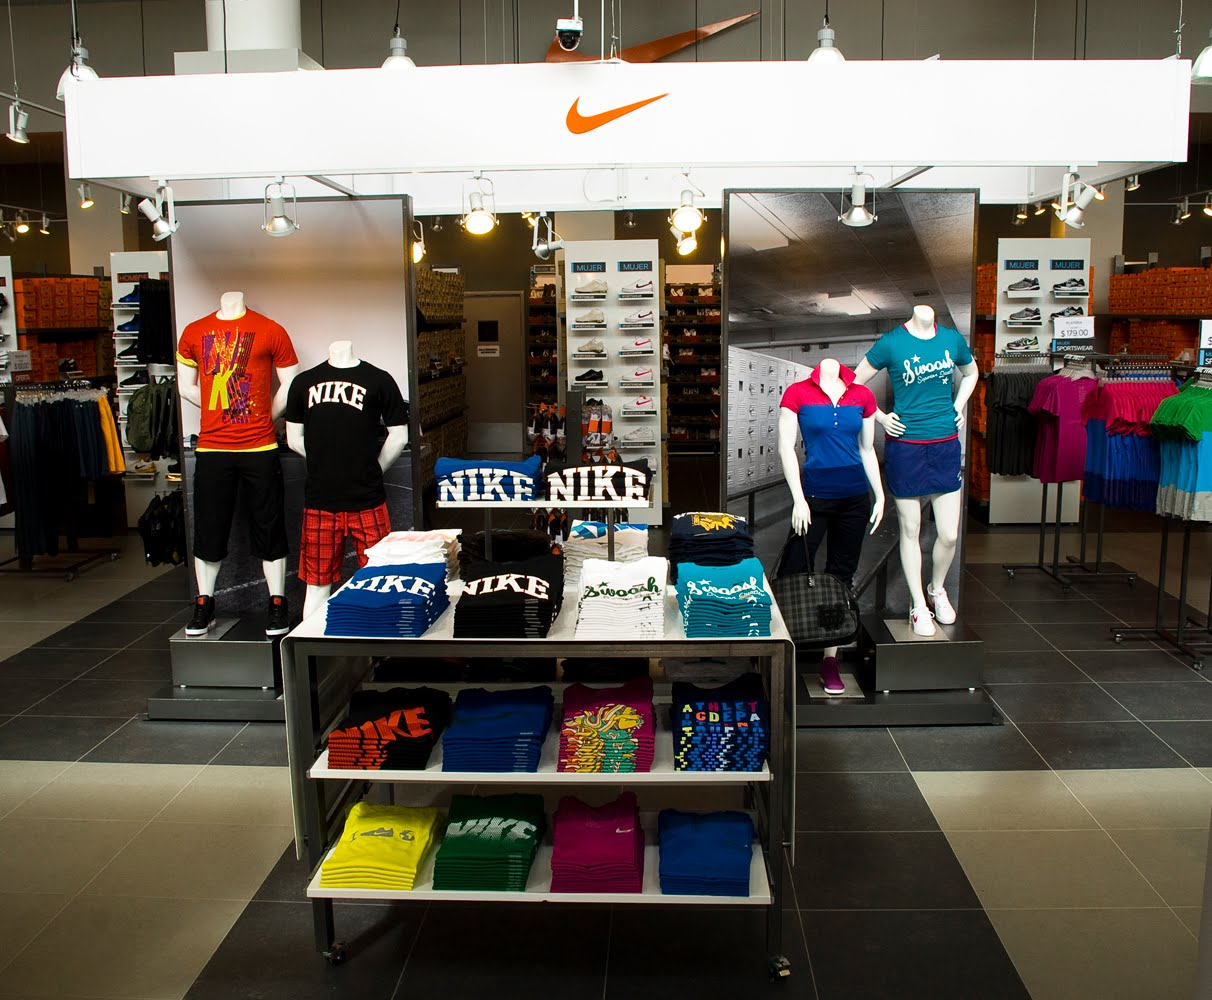 Nike Factory Store store location in Orlando Premium Outlets - International Drive, Florida - hours, phone, reviews. Directions and address: International Drive, Orlando, Florida - FL , GPS , Sales and coupons information.